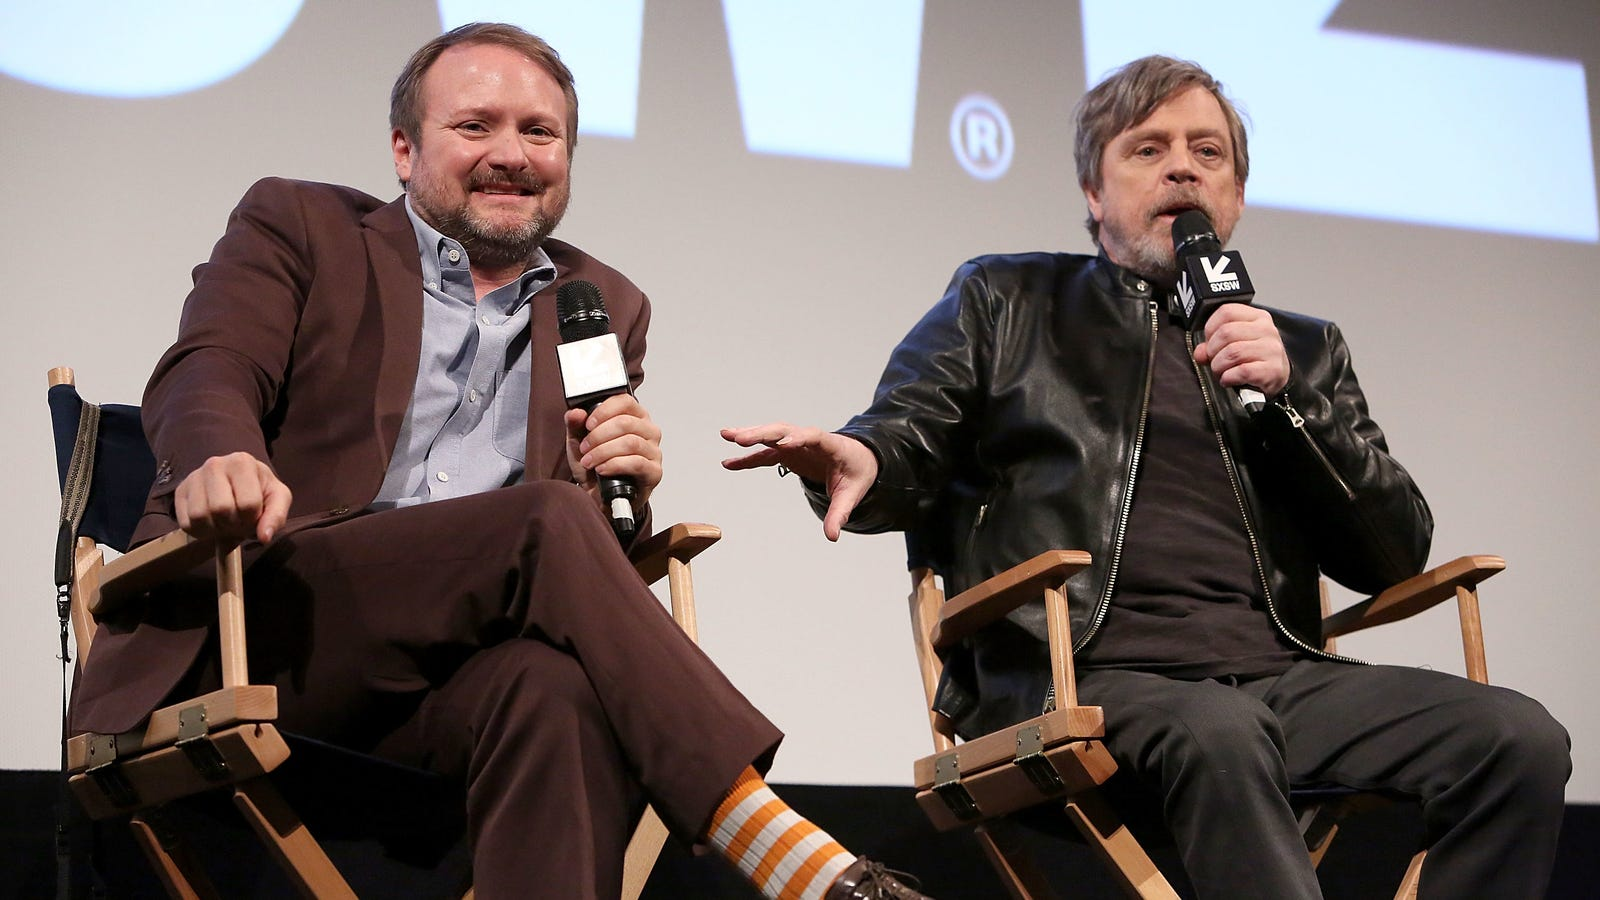 Mark Hamill regrets ever making his debates with Rian Johnson about